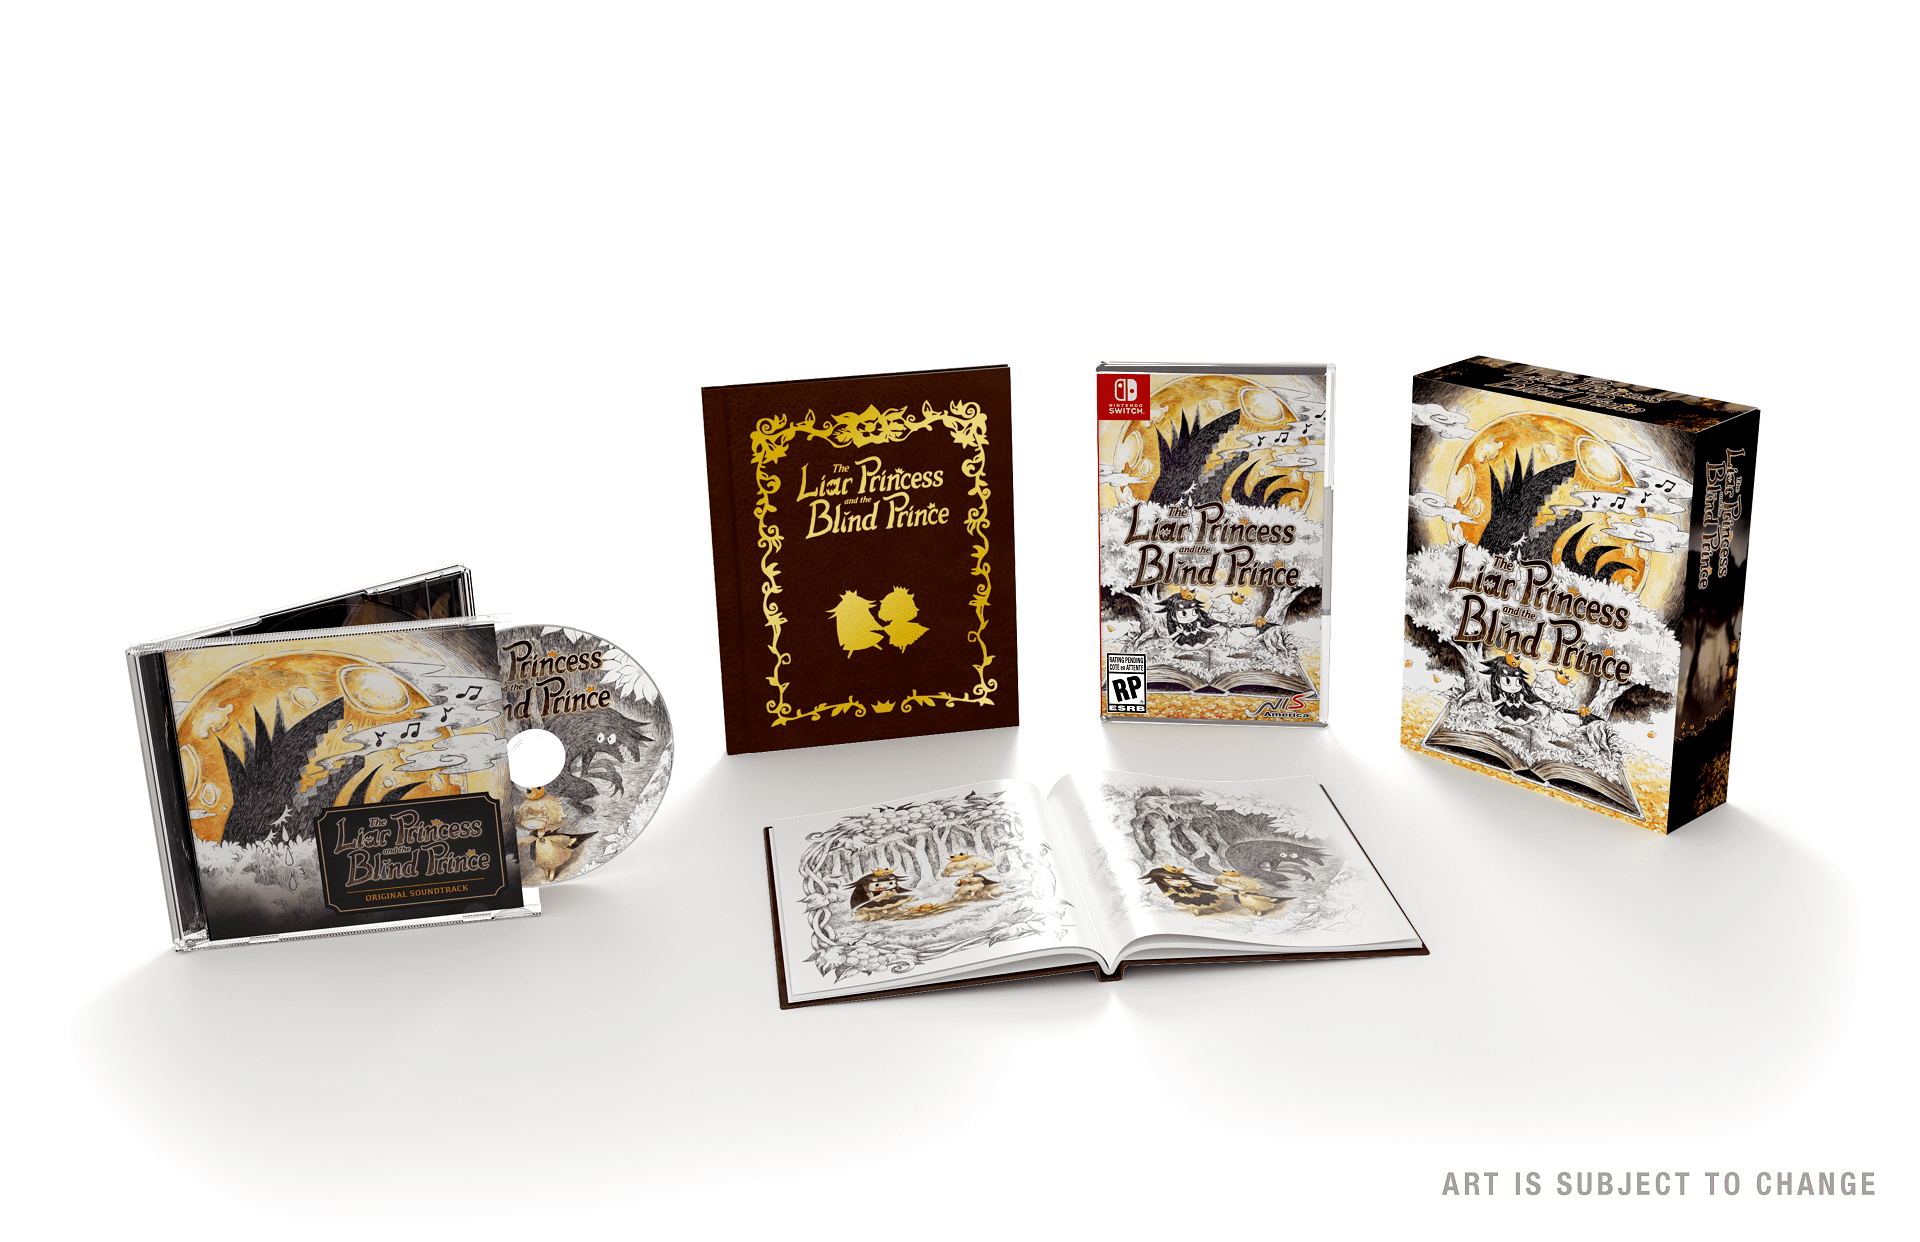 The Liar and the Blind Prince for Nintendo Switch